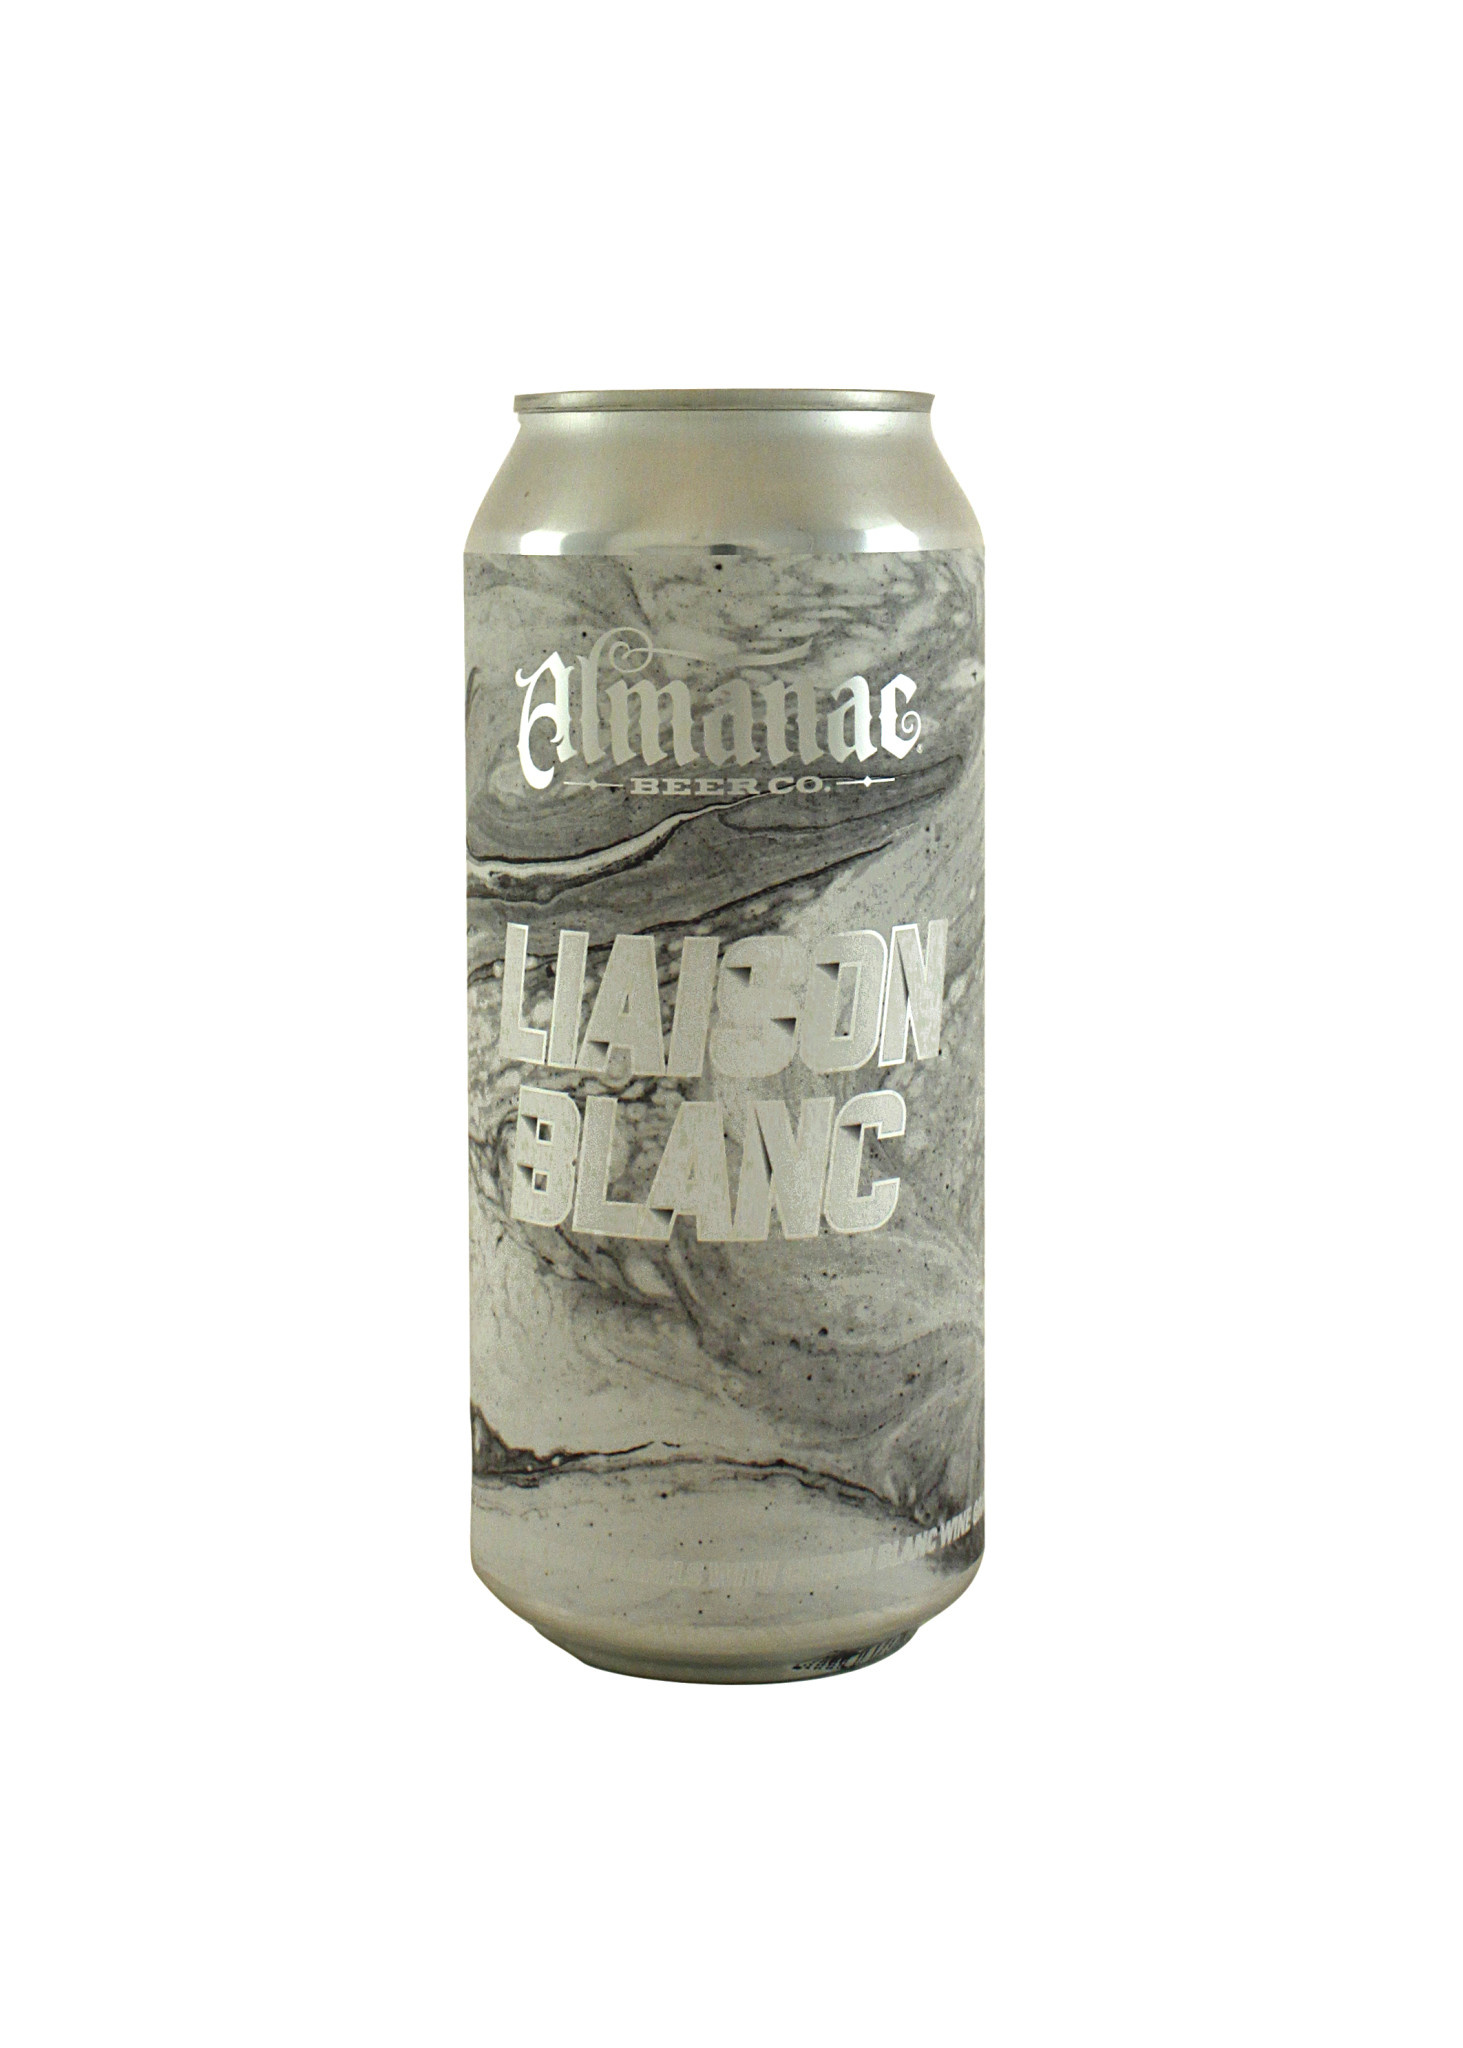 "Almanac Beer Co. ""Liaison Blanc"" Sour w/ Chenin Blanc Grapes 16oz. can - Alameda, CA"